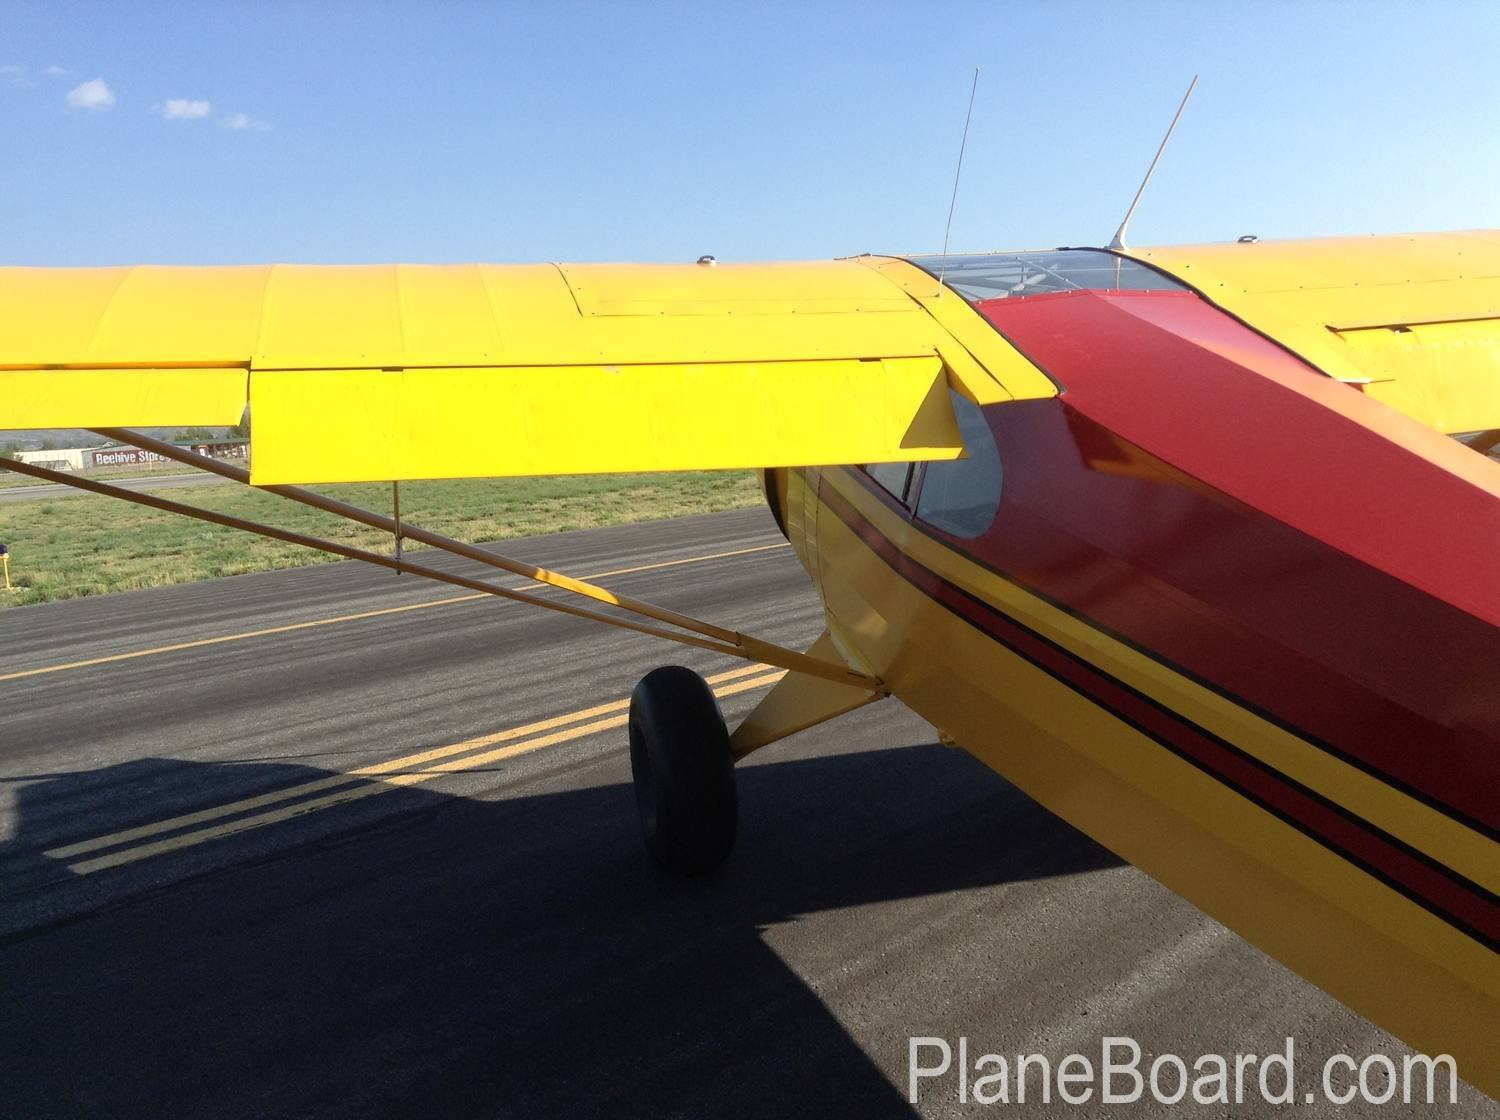 1947 Piper Super Cruiser For Sale N3359m Planeboard